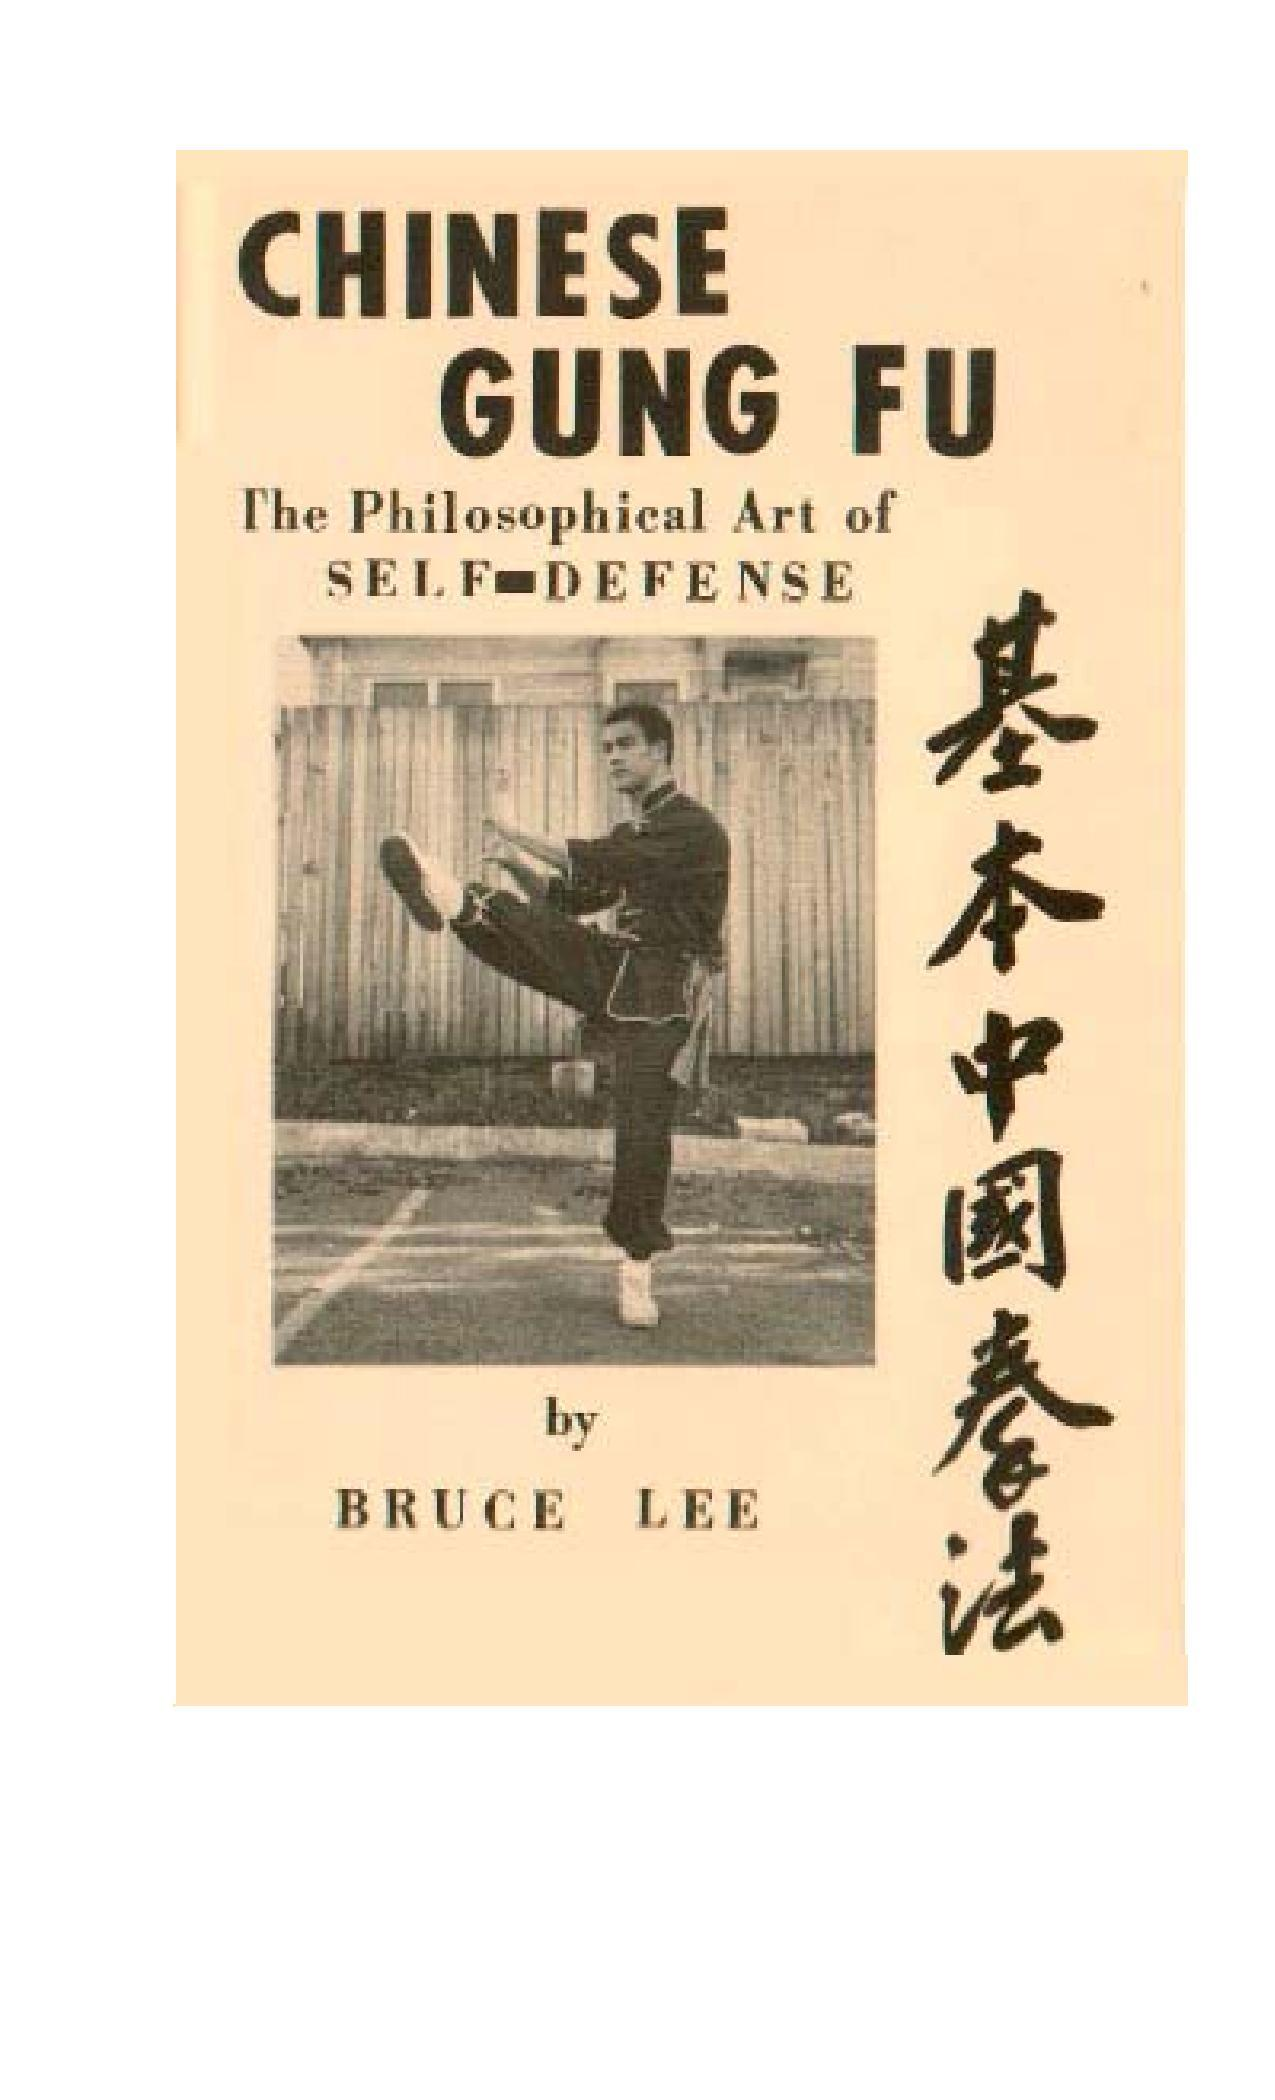 Bruce Lee Libros Los 7 Libros De Kung Fu De Bruce Lee Download